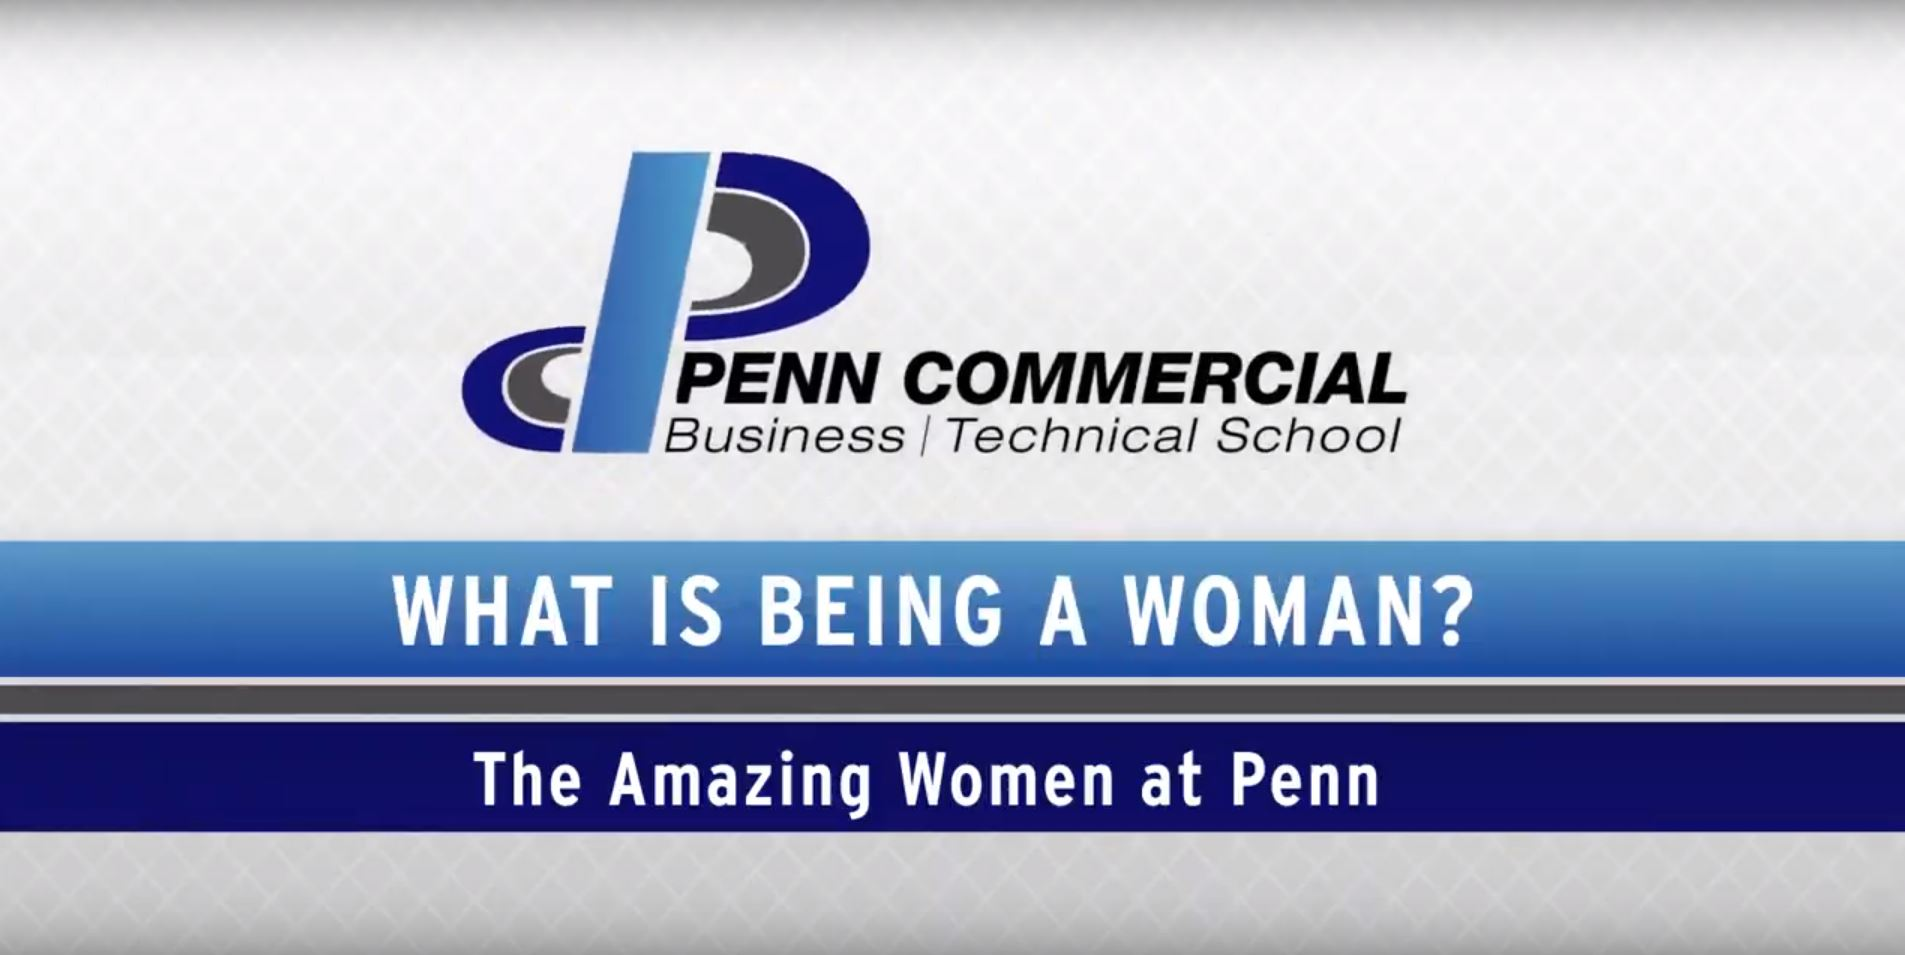 Women at Penn Commercial